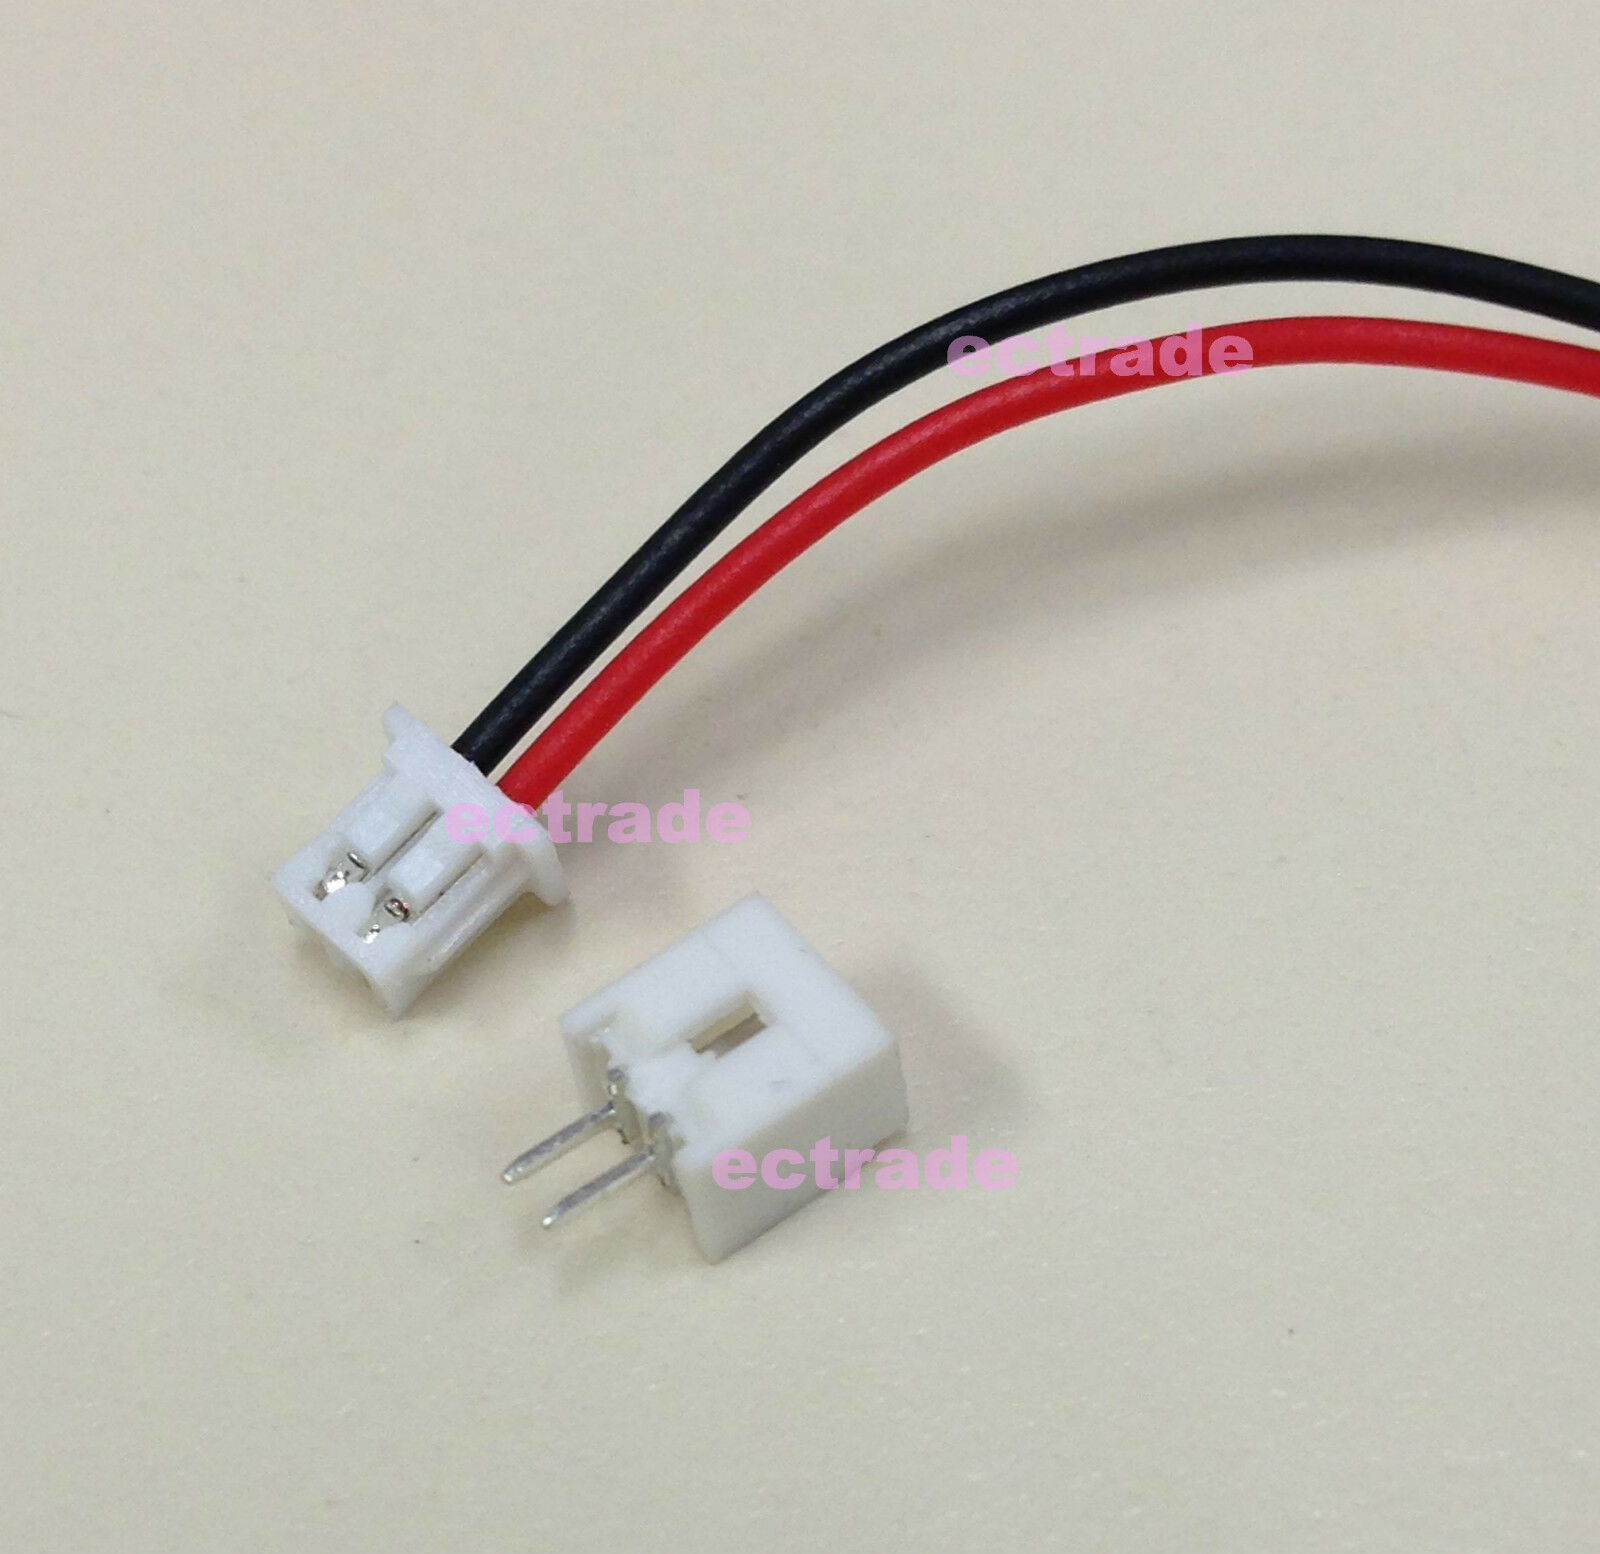 50 Pairs Micro JST 1.25 3-Pin Male /& Female Connector Plug Wires Cables 150mm